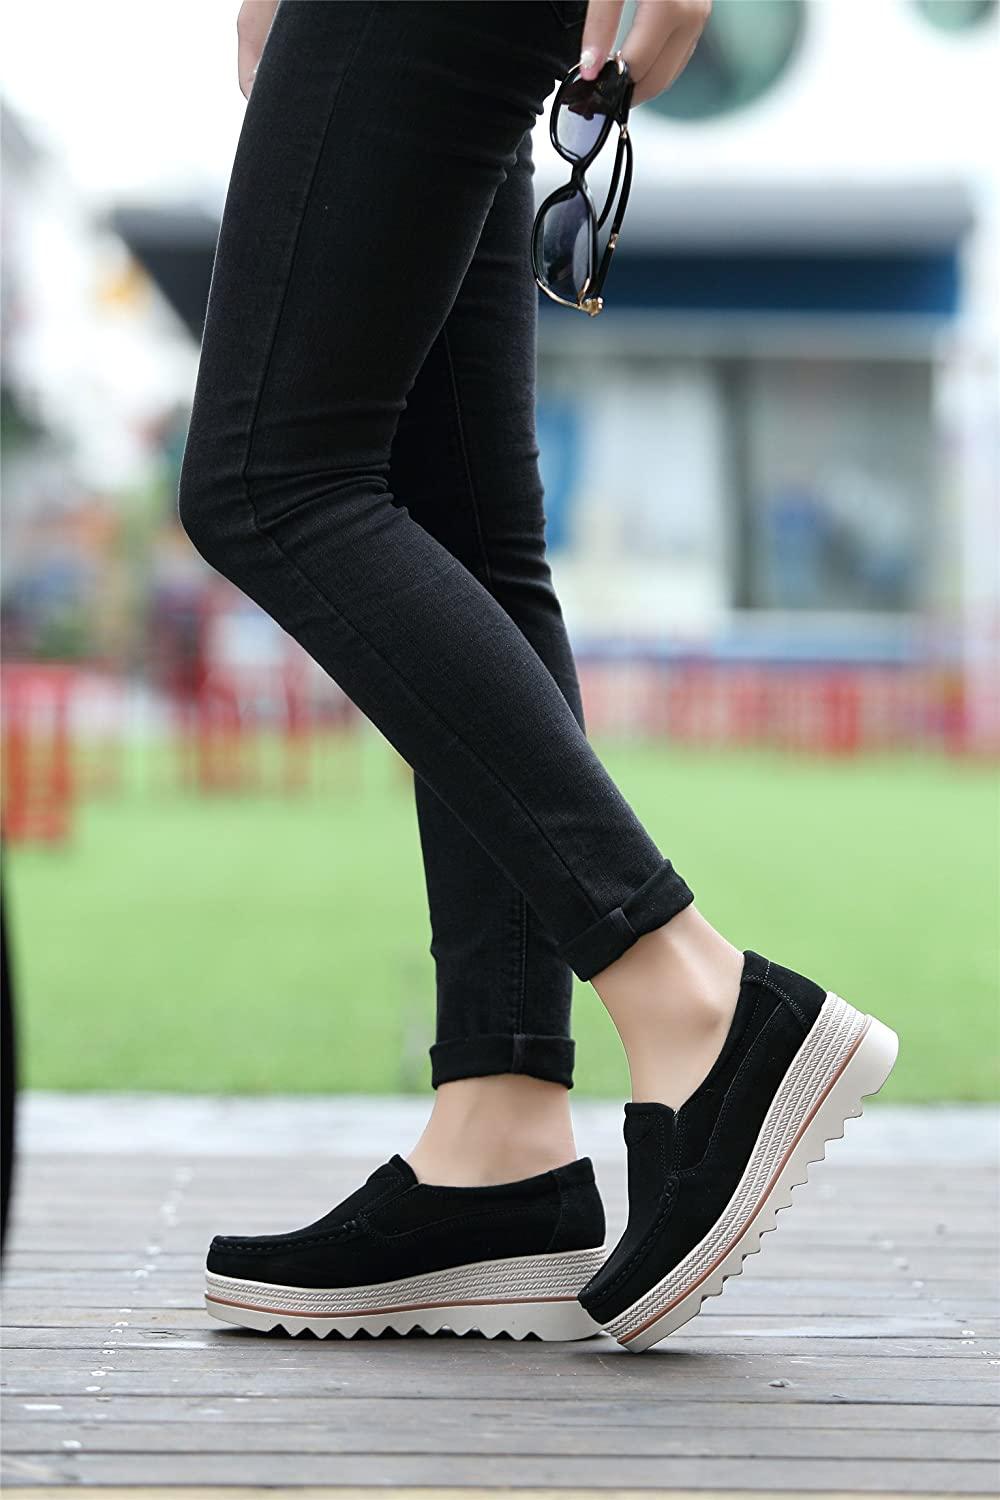 Ladies Loafers Women Platform Slip On Shoes Comfort Suede Moccasins Fashion Casual Wedge Sneakers Black Grey Khaki Blue 35-42